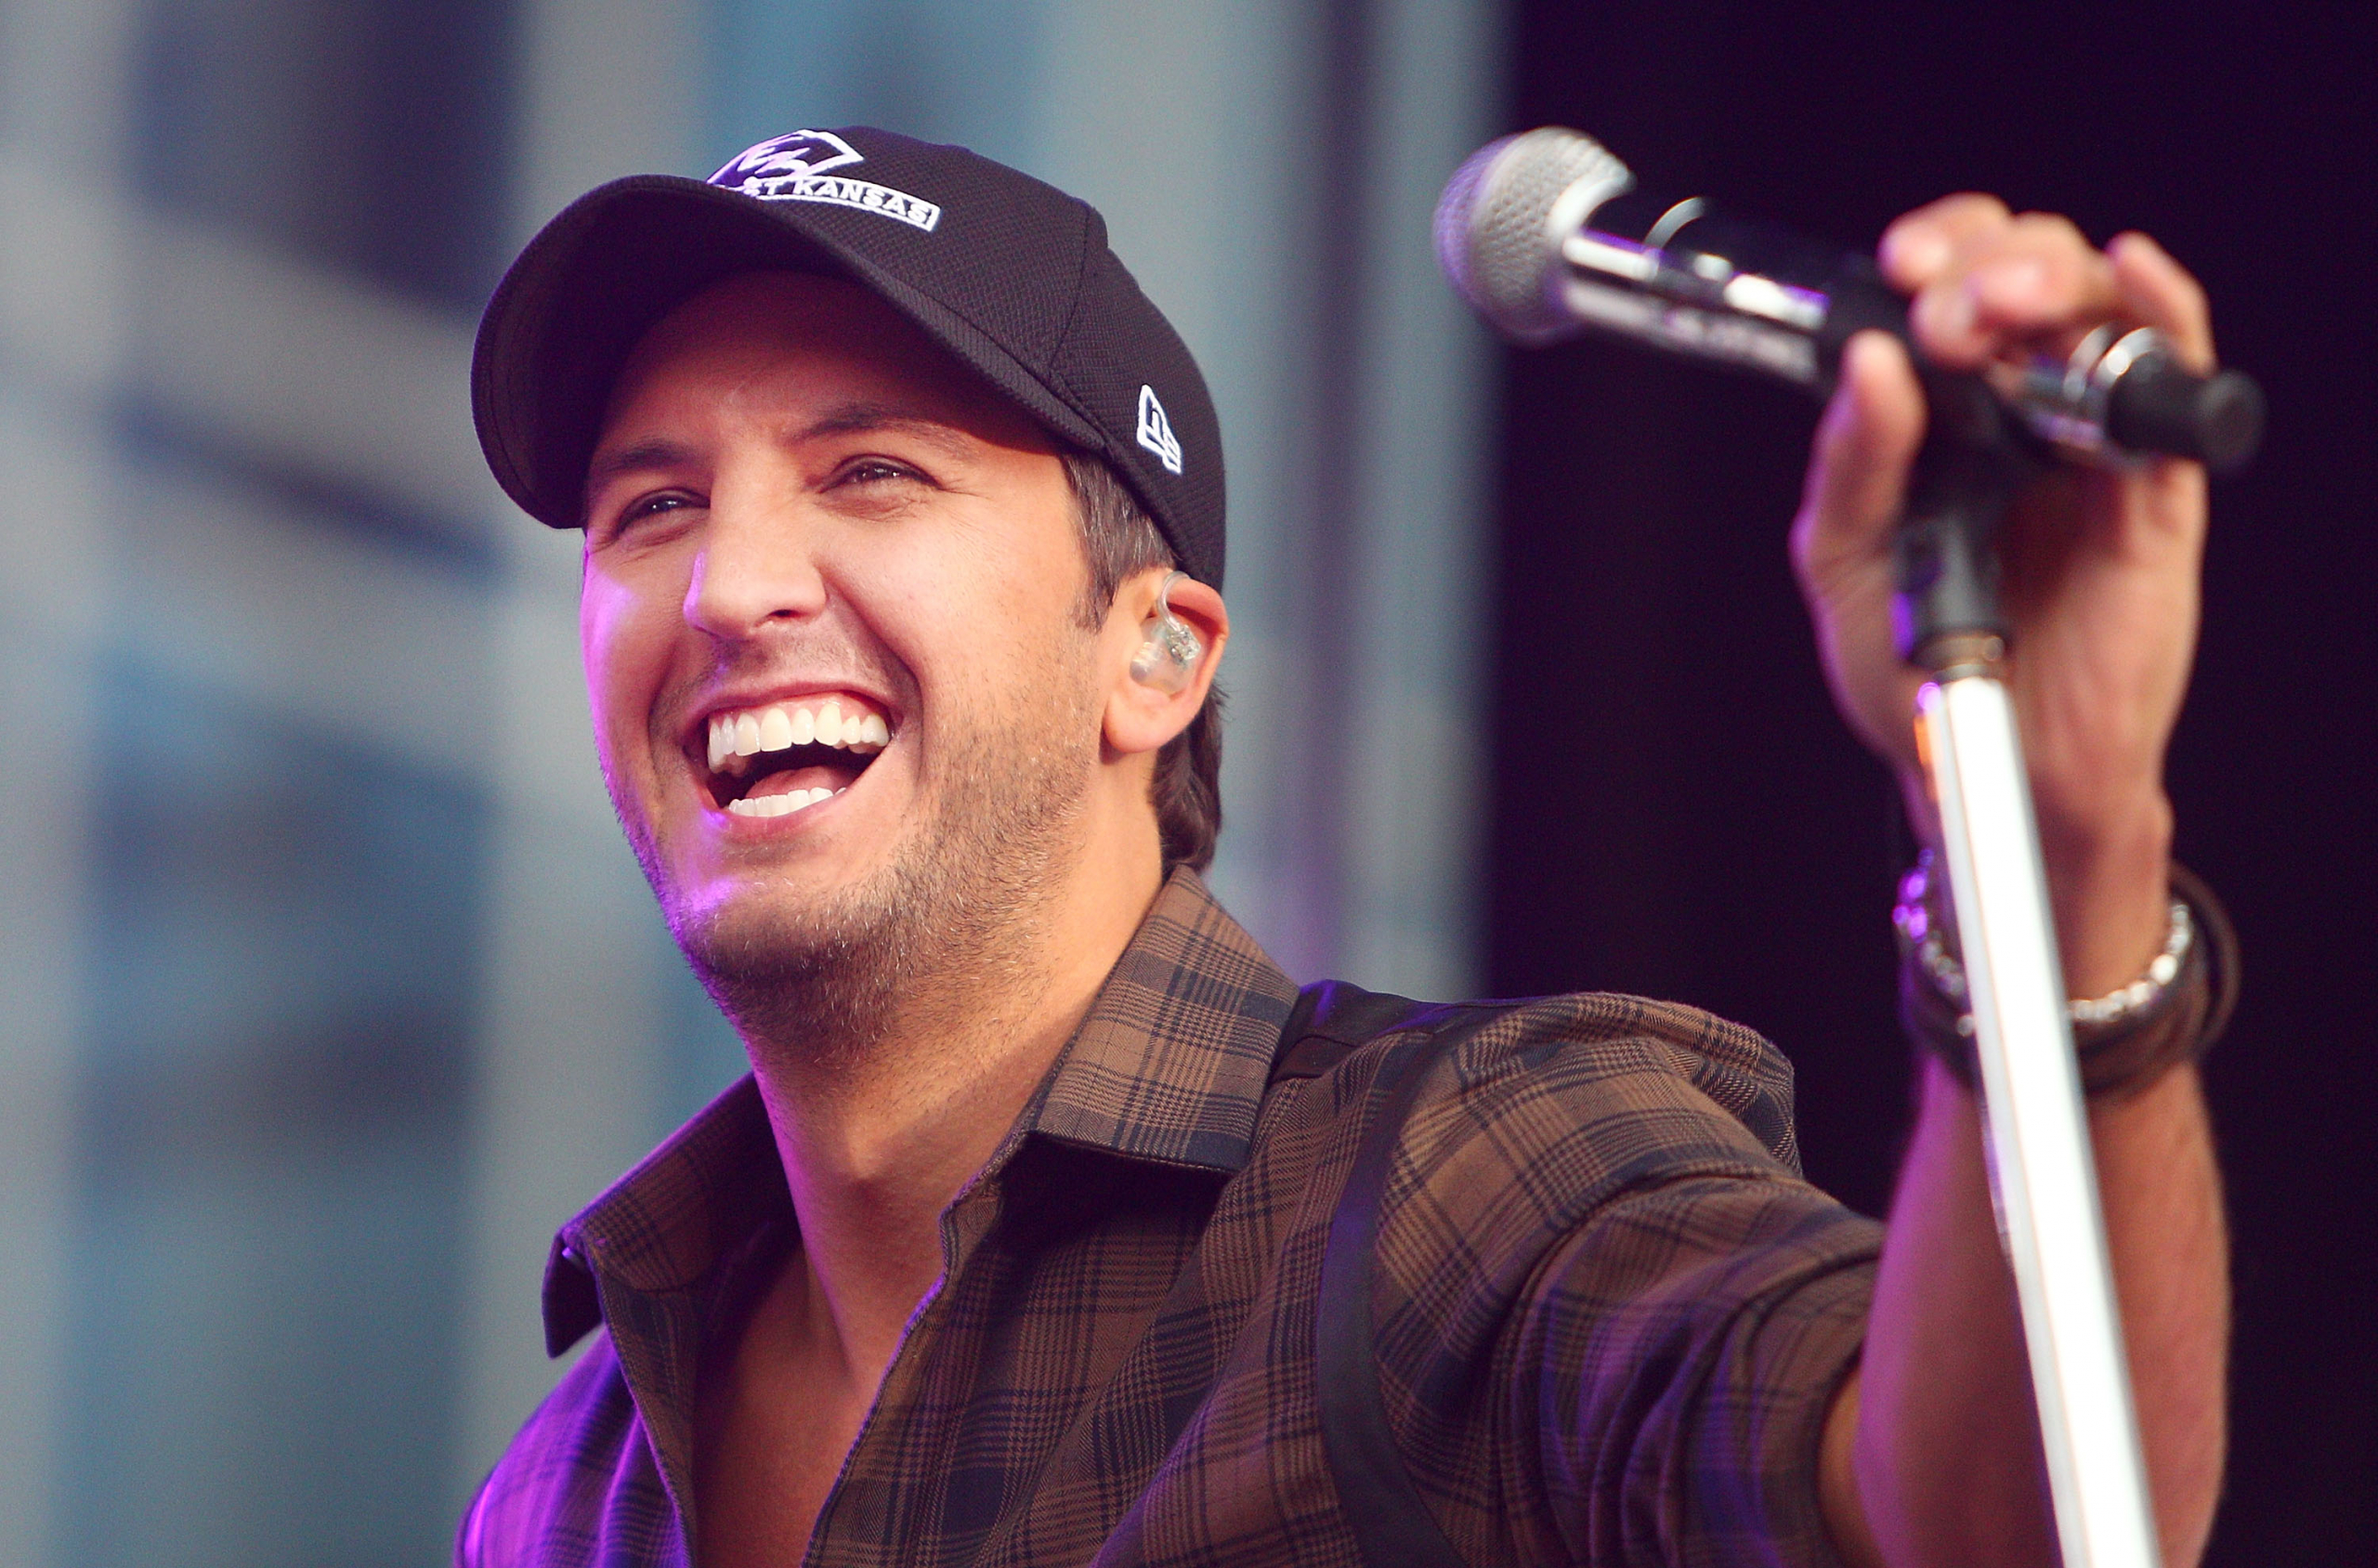 Mom Shocked When Luke Bryan Pulled Over To Change Her Tire [WATCH]